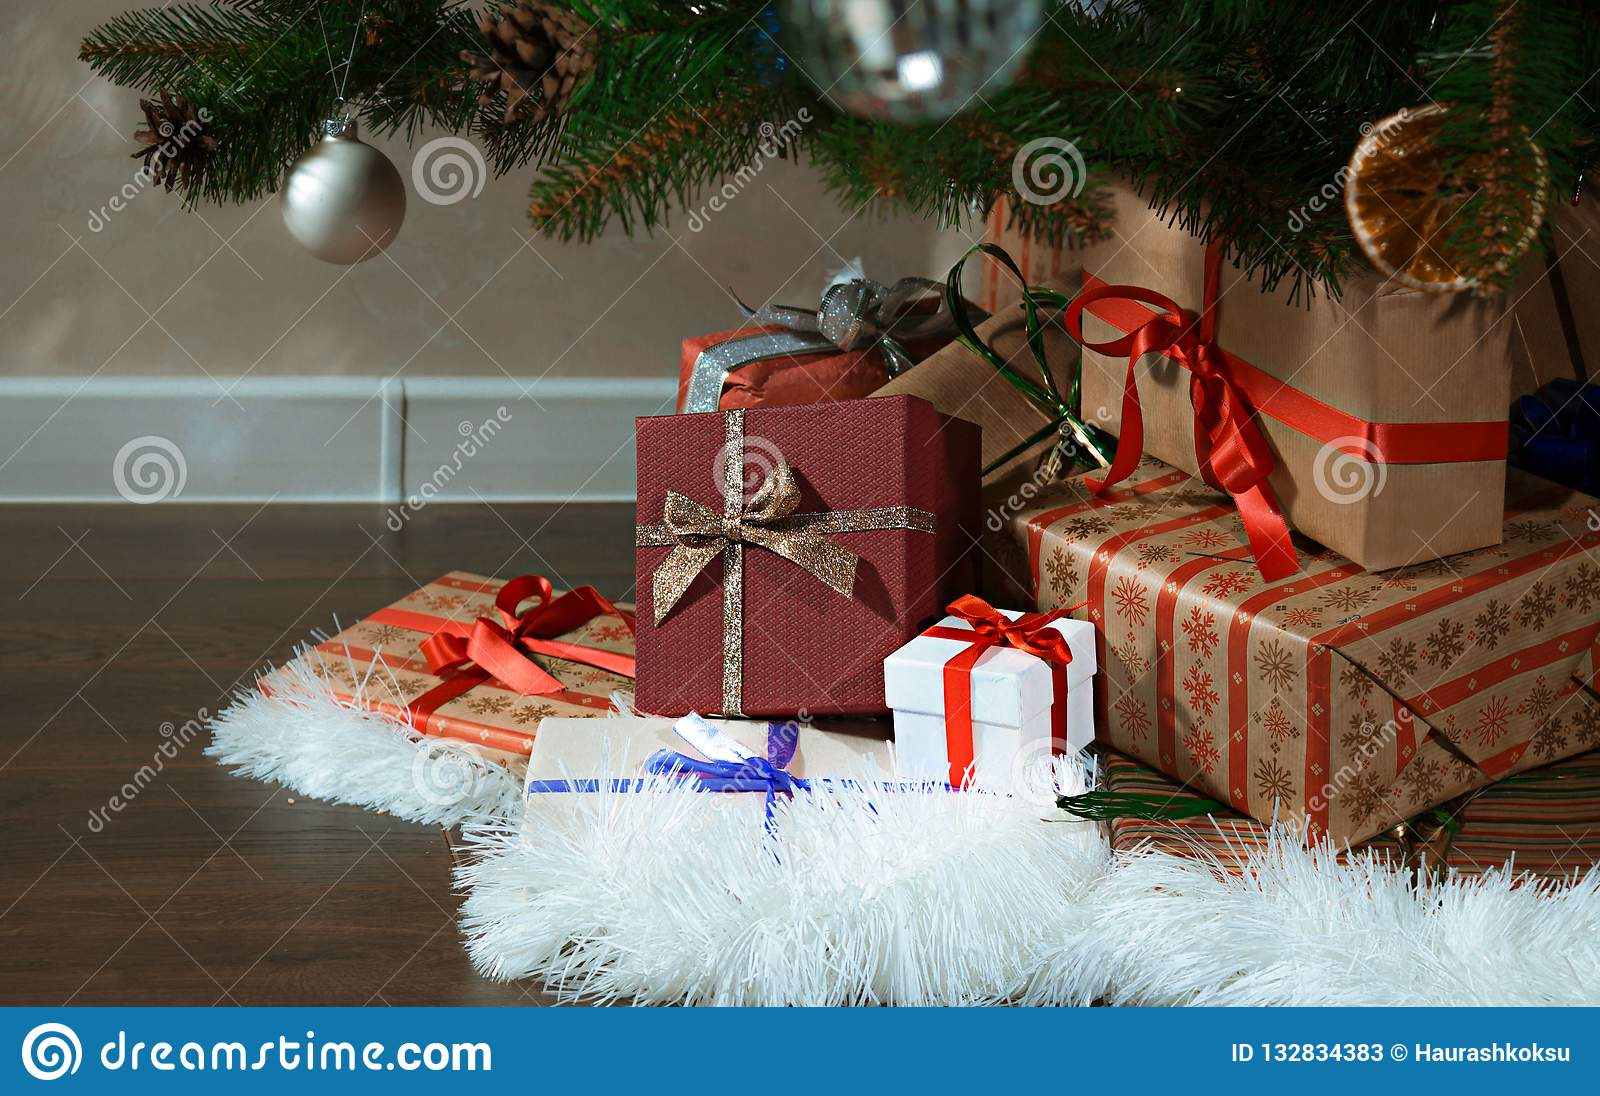 A Pile Of Christmas Presents Under The Tree New Year Background